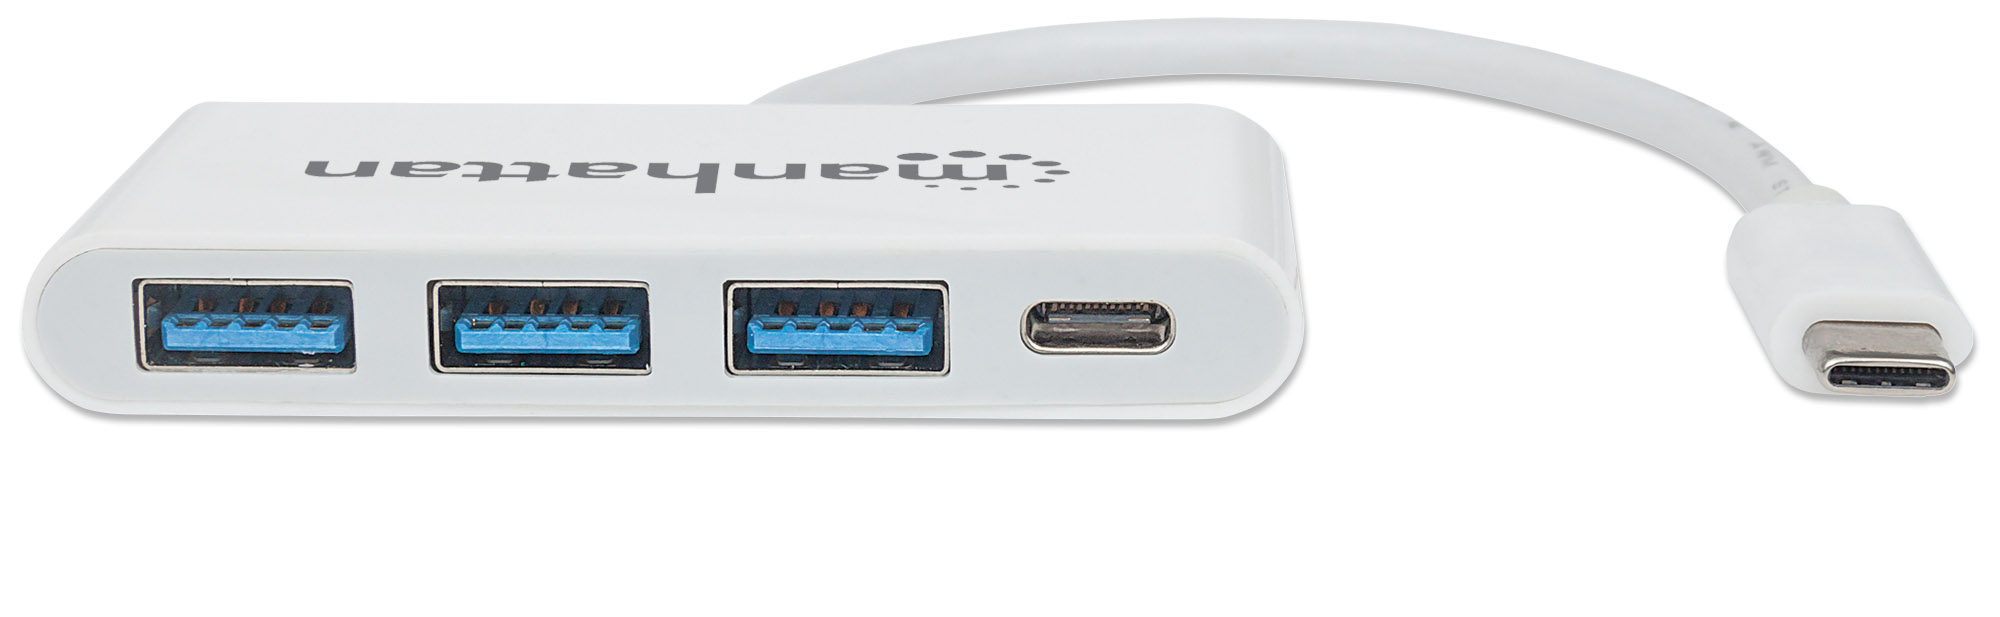 USB 3.2 Gen 1 Type-C 3-Port Hub with Power Delivery